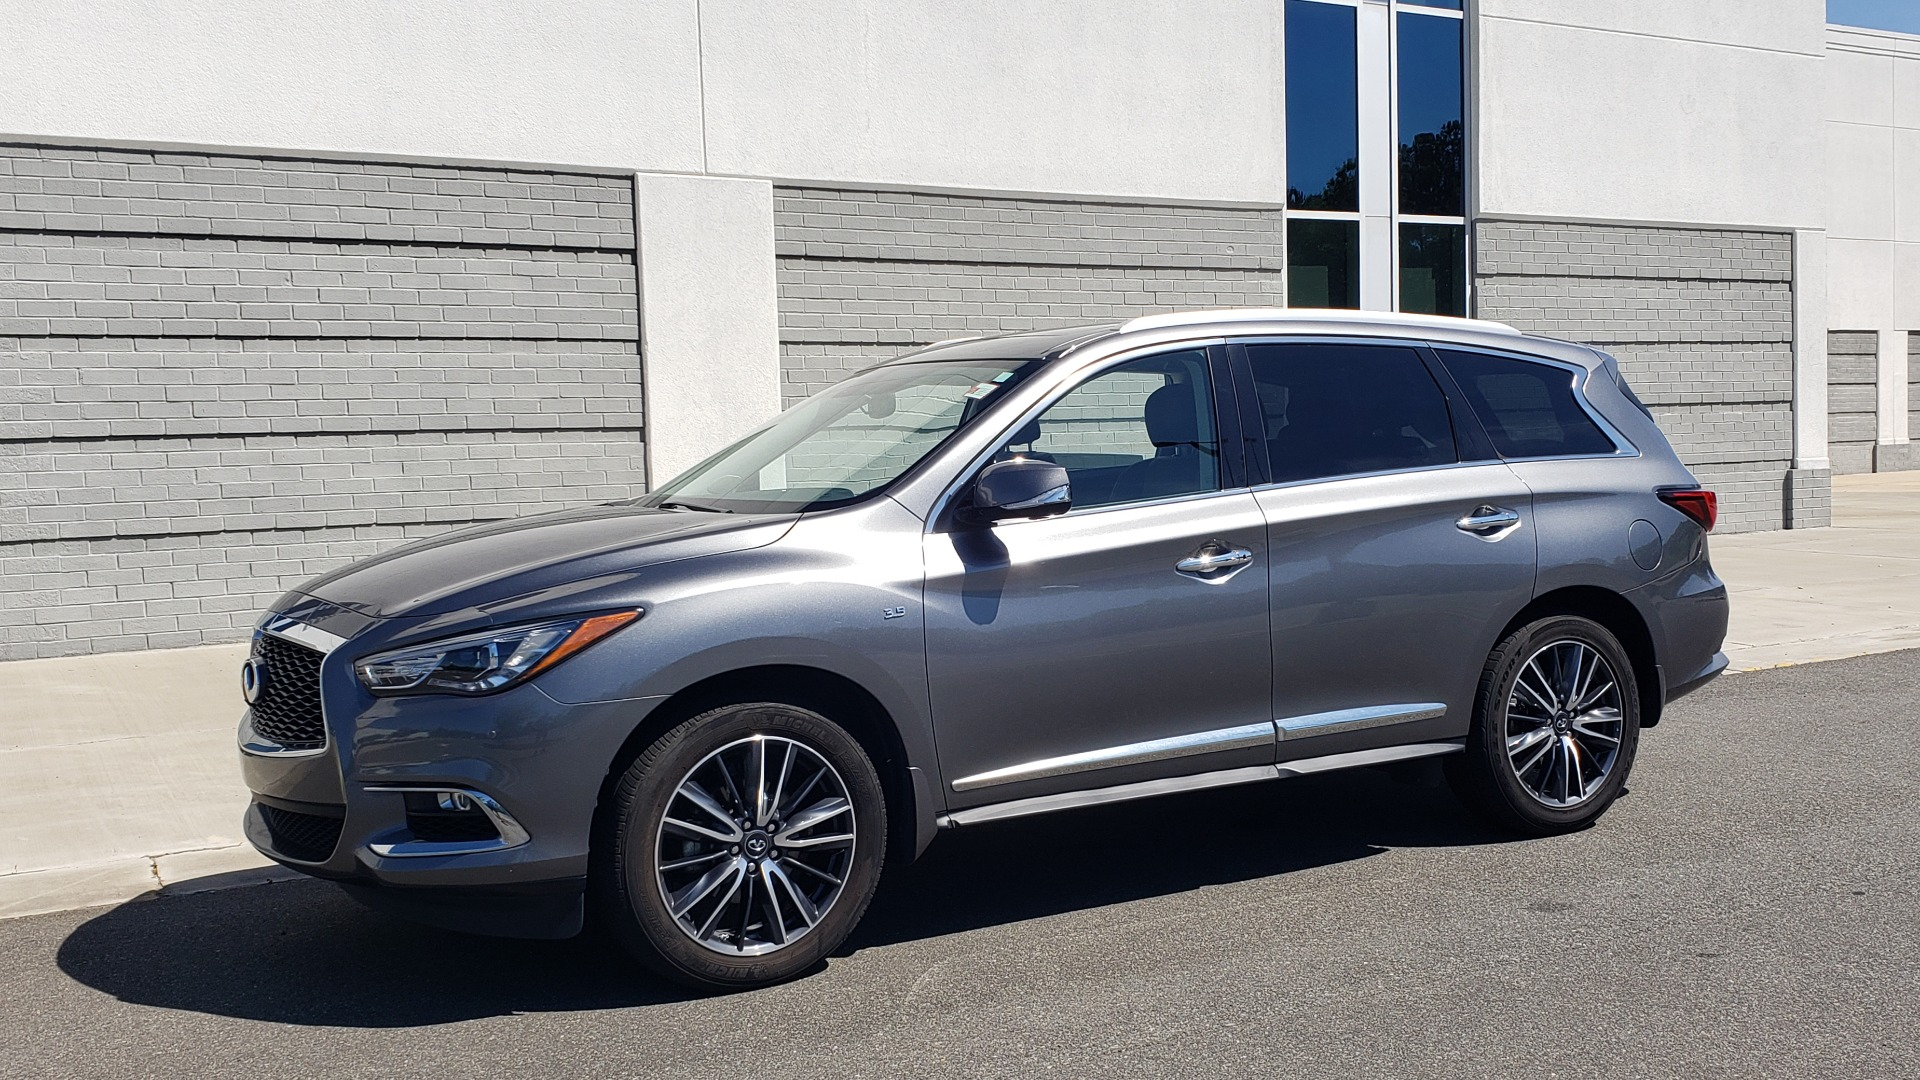 Used 2018 INFINITI QX60 3.5L V6 / FWD / CVT TRANS / NAV / SUNROOF / 3-ROWS / REARVIEW for sale $31,999 at Formula Imports in Charlotte NC 28227 4